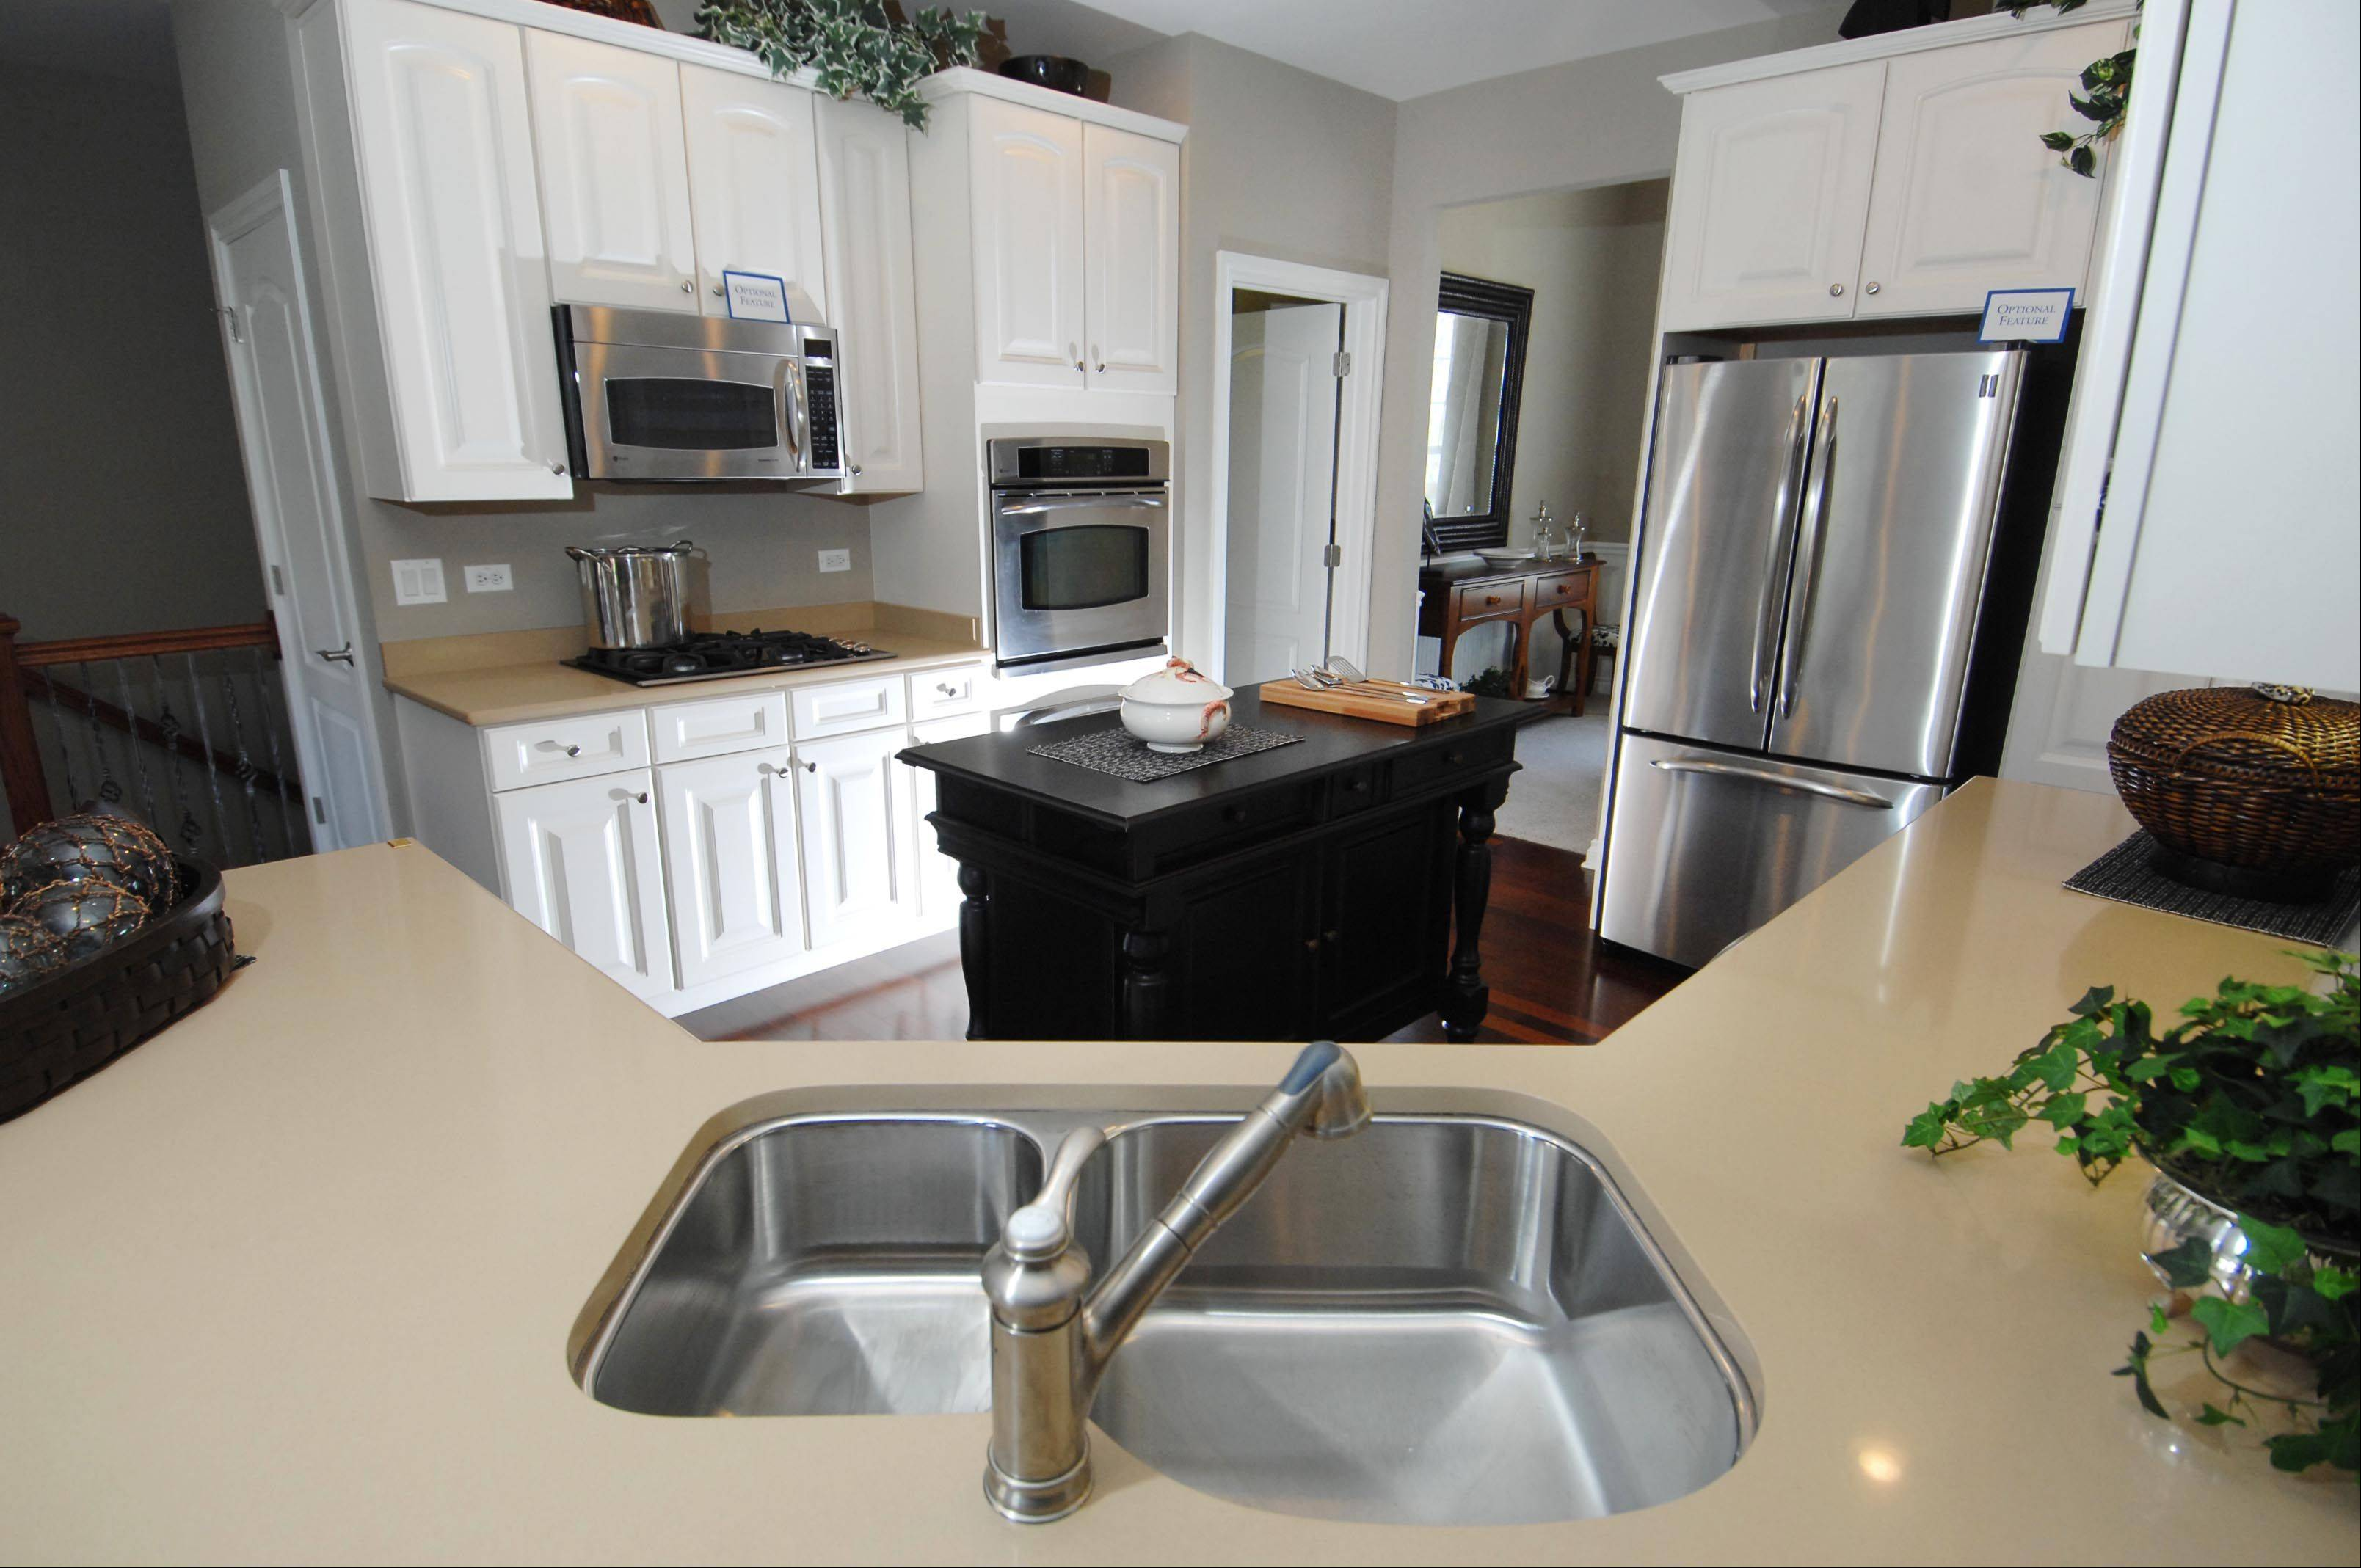 The kitchen of the Jefferson model features stainless steel appliances and sink, and a large black island and white cabinets at Liberty Trails in McHenry.